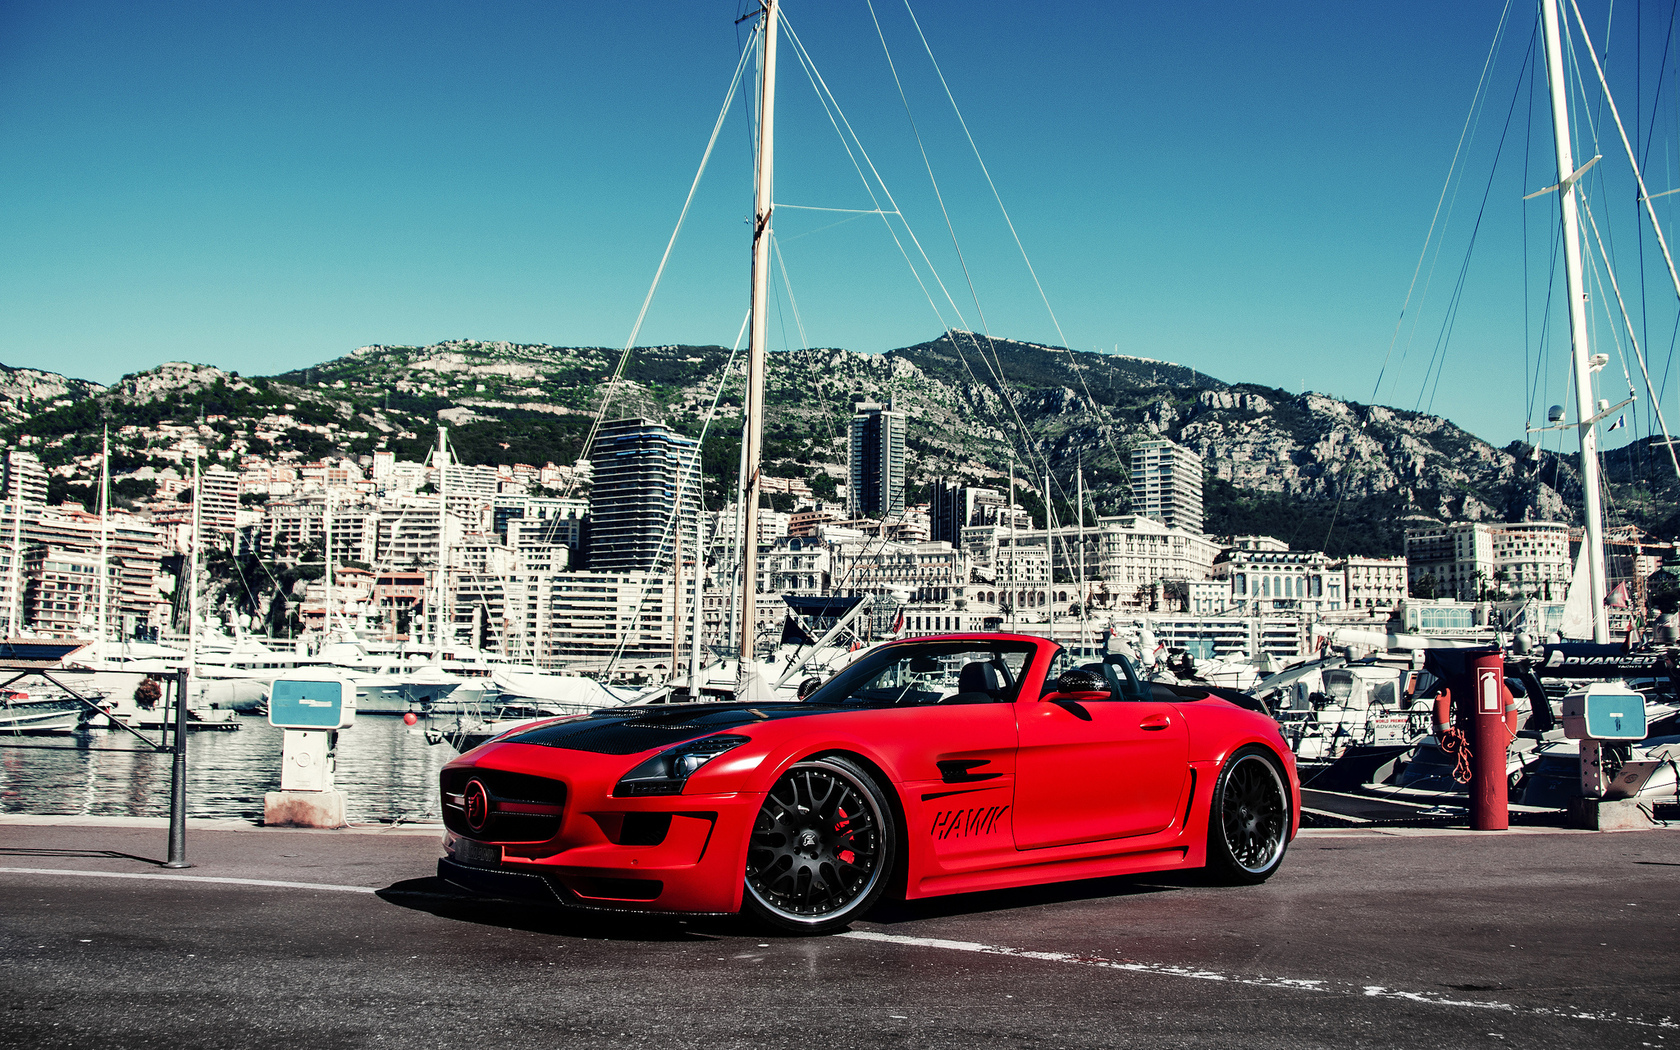 building, island мерседес, hamann hawk, sls, tuning, yacht, amg, red, mercedes, mountains